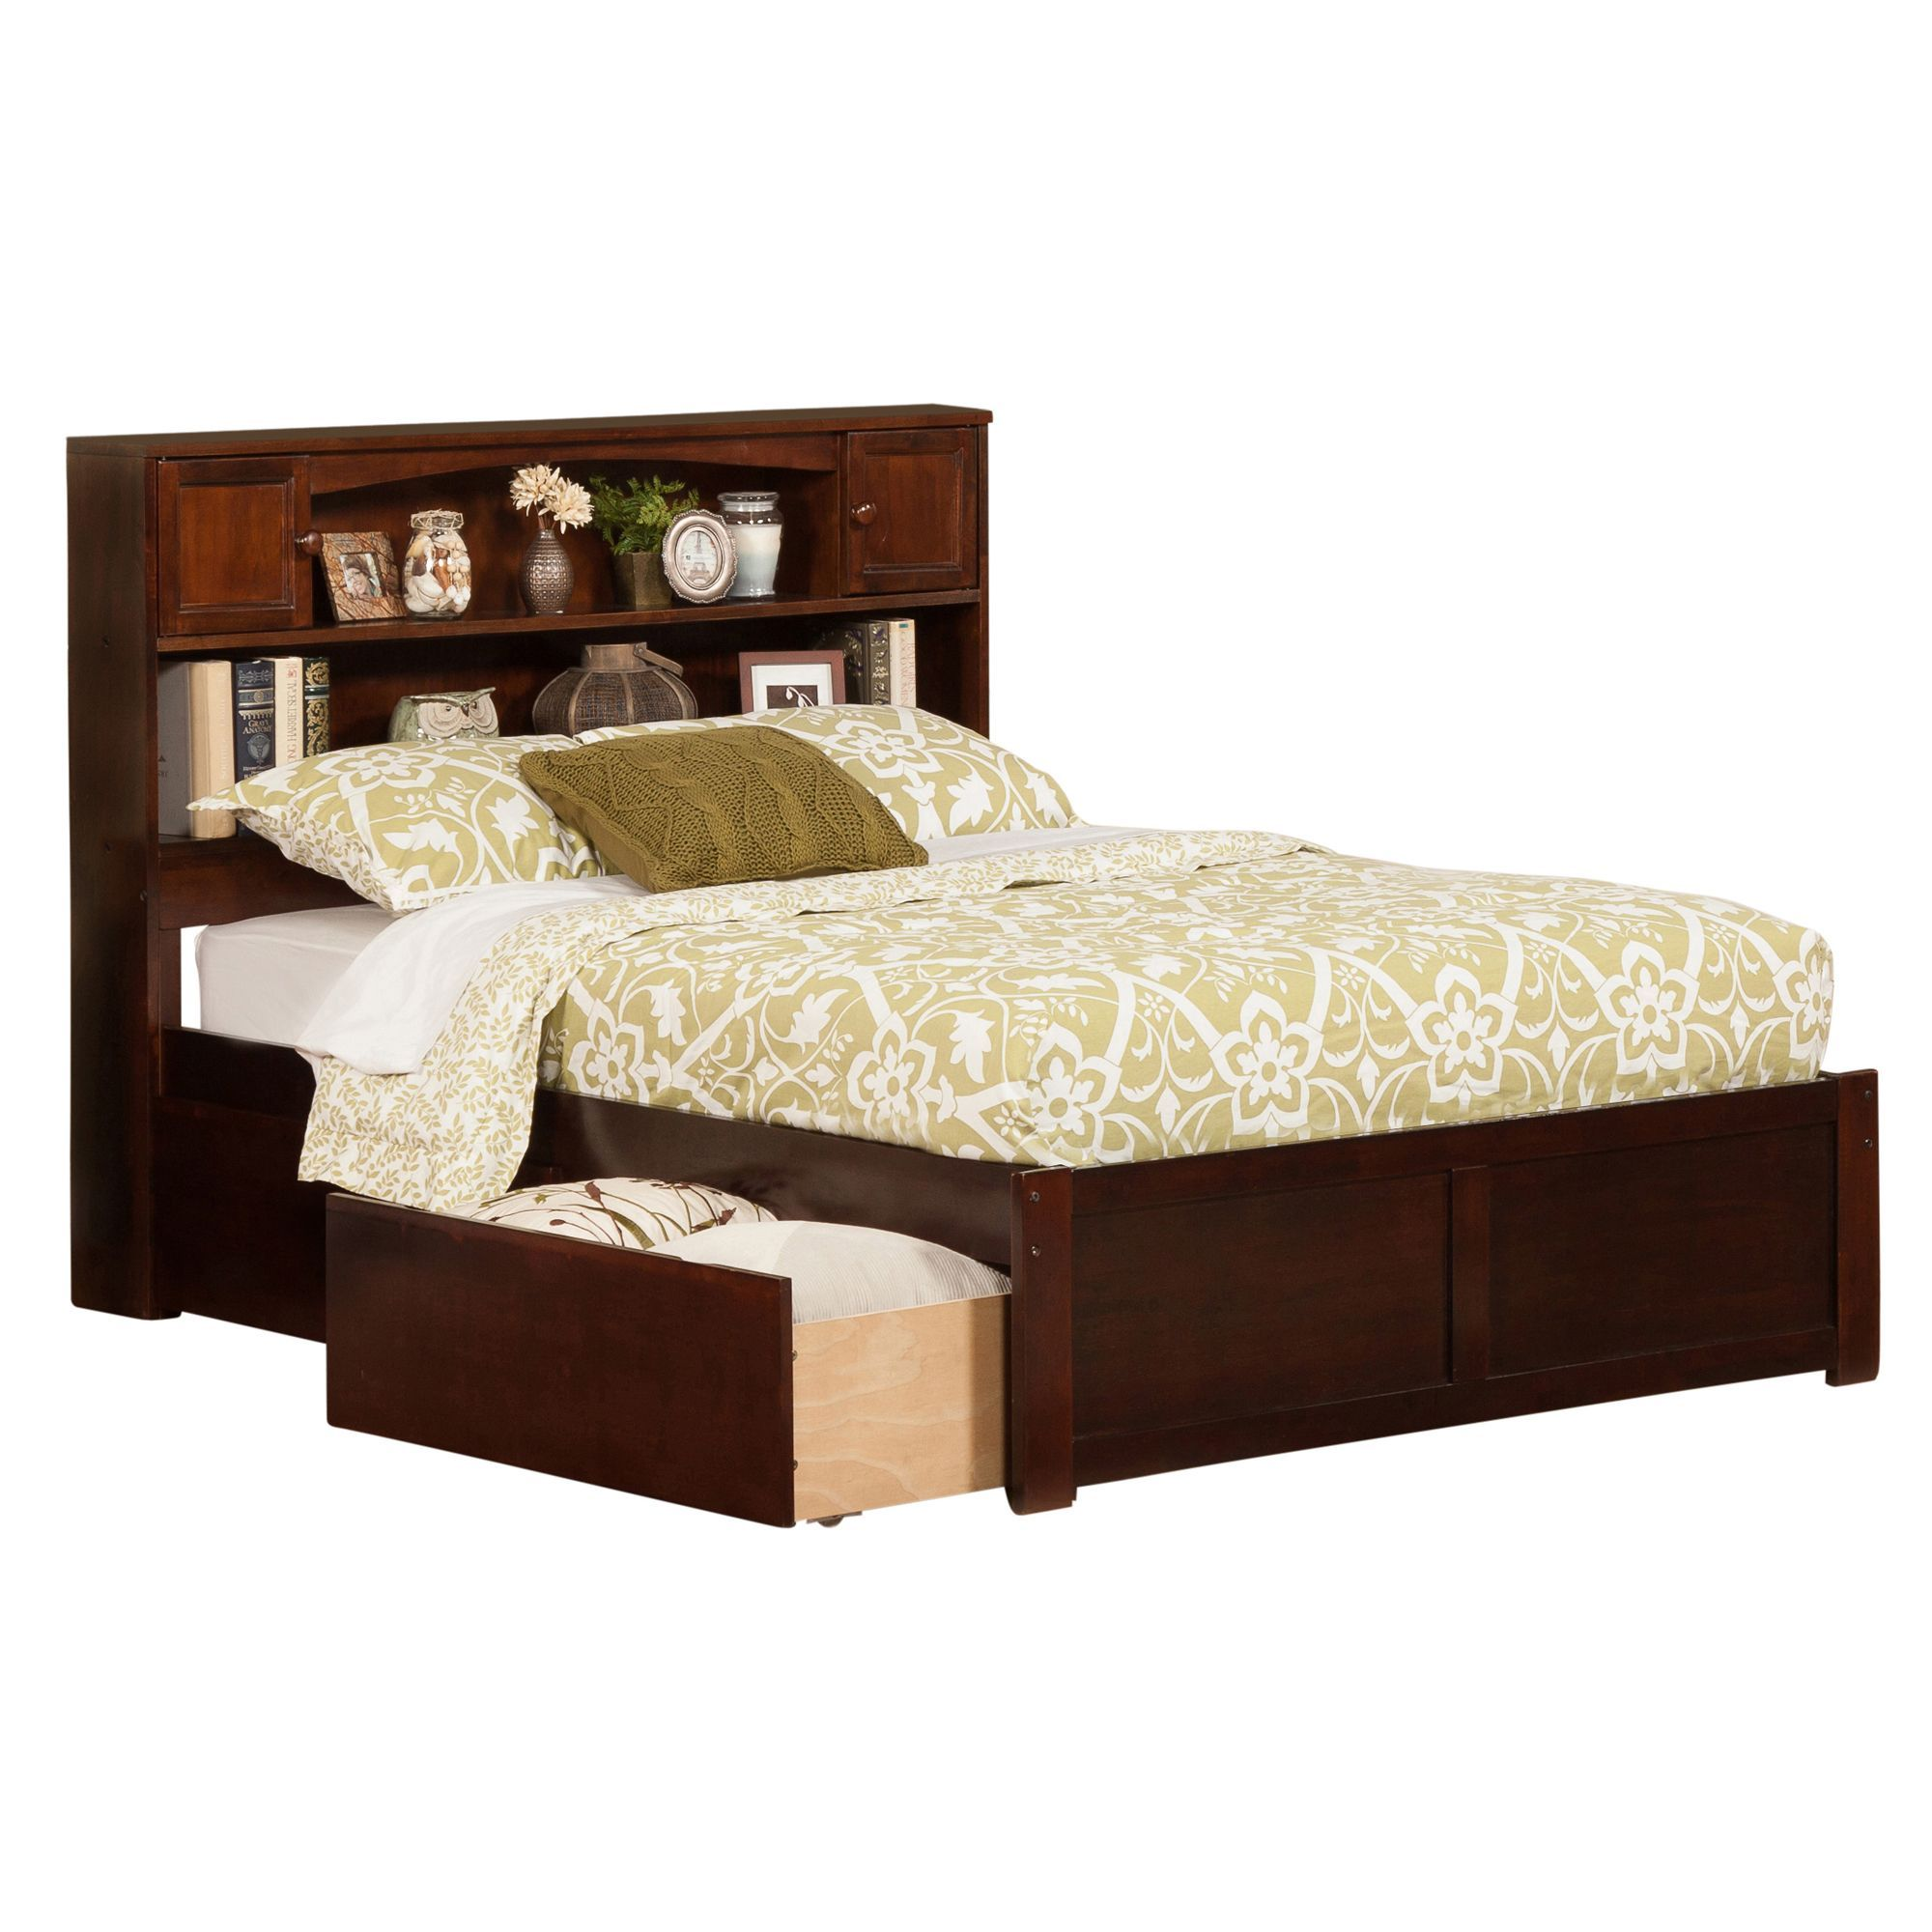 atlantic newport walnut finish wood full bed with flat panel foot